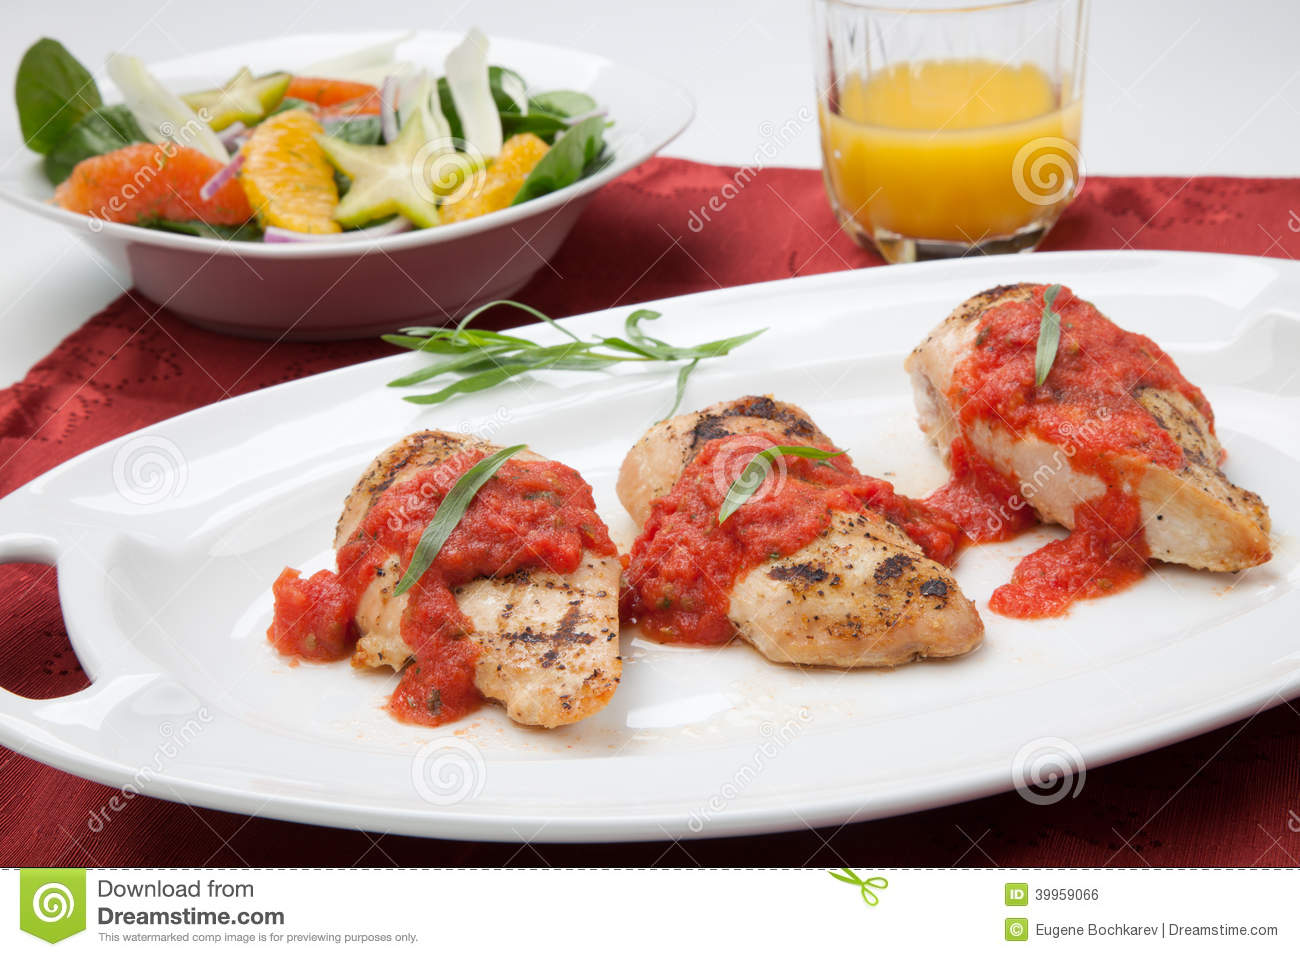 Grilled Chicken Breast With Tomato Tarragon Sauce. Stock Photo - Image ...